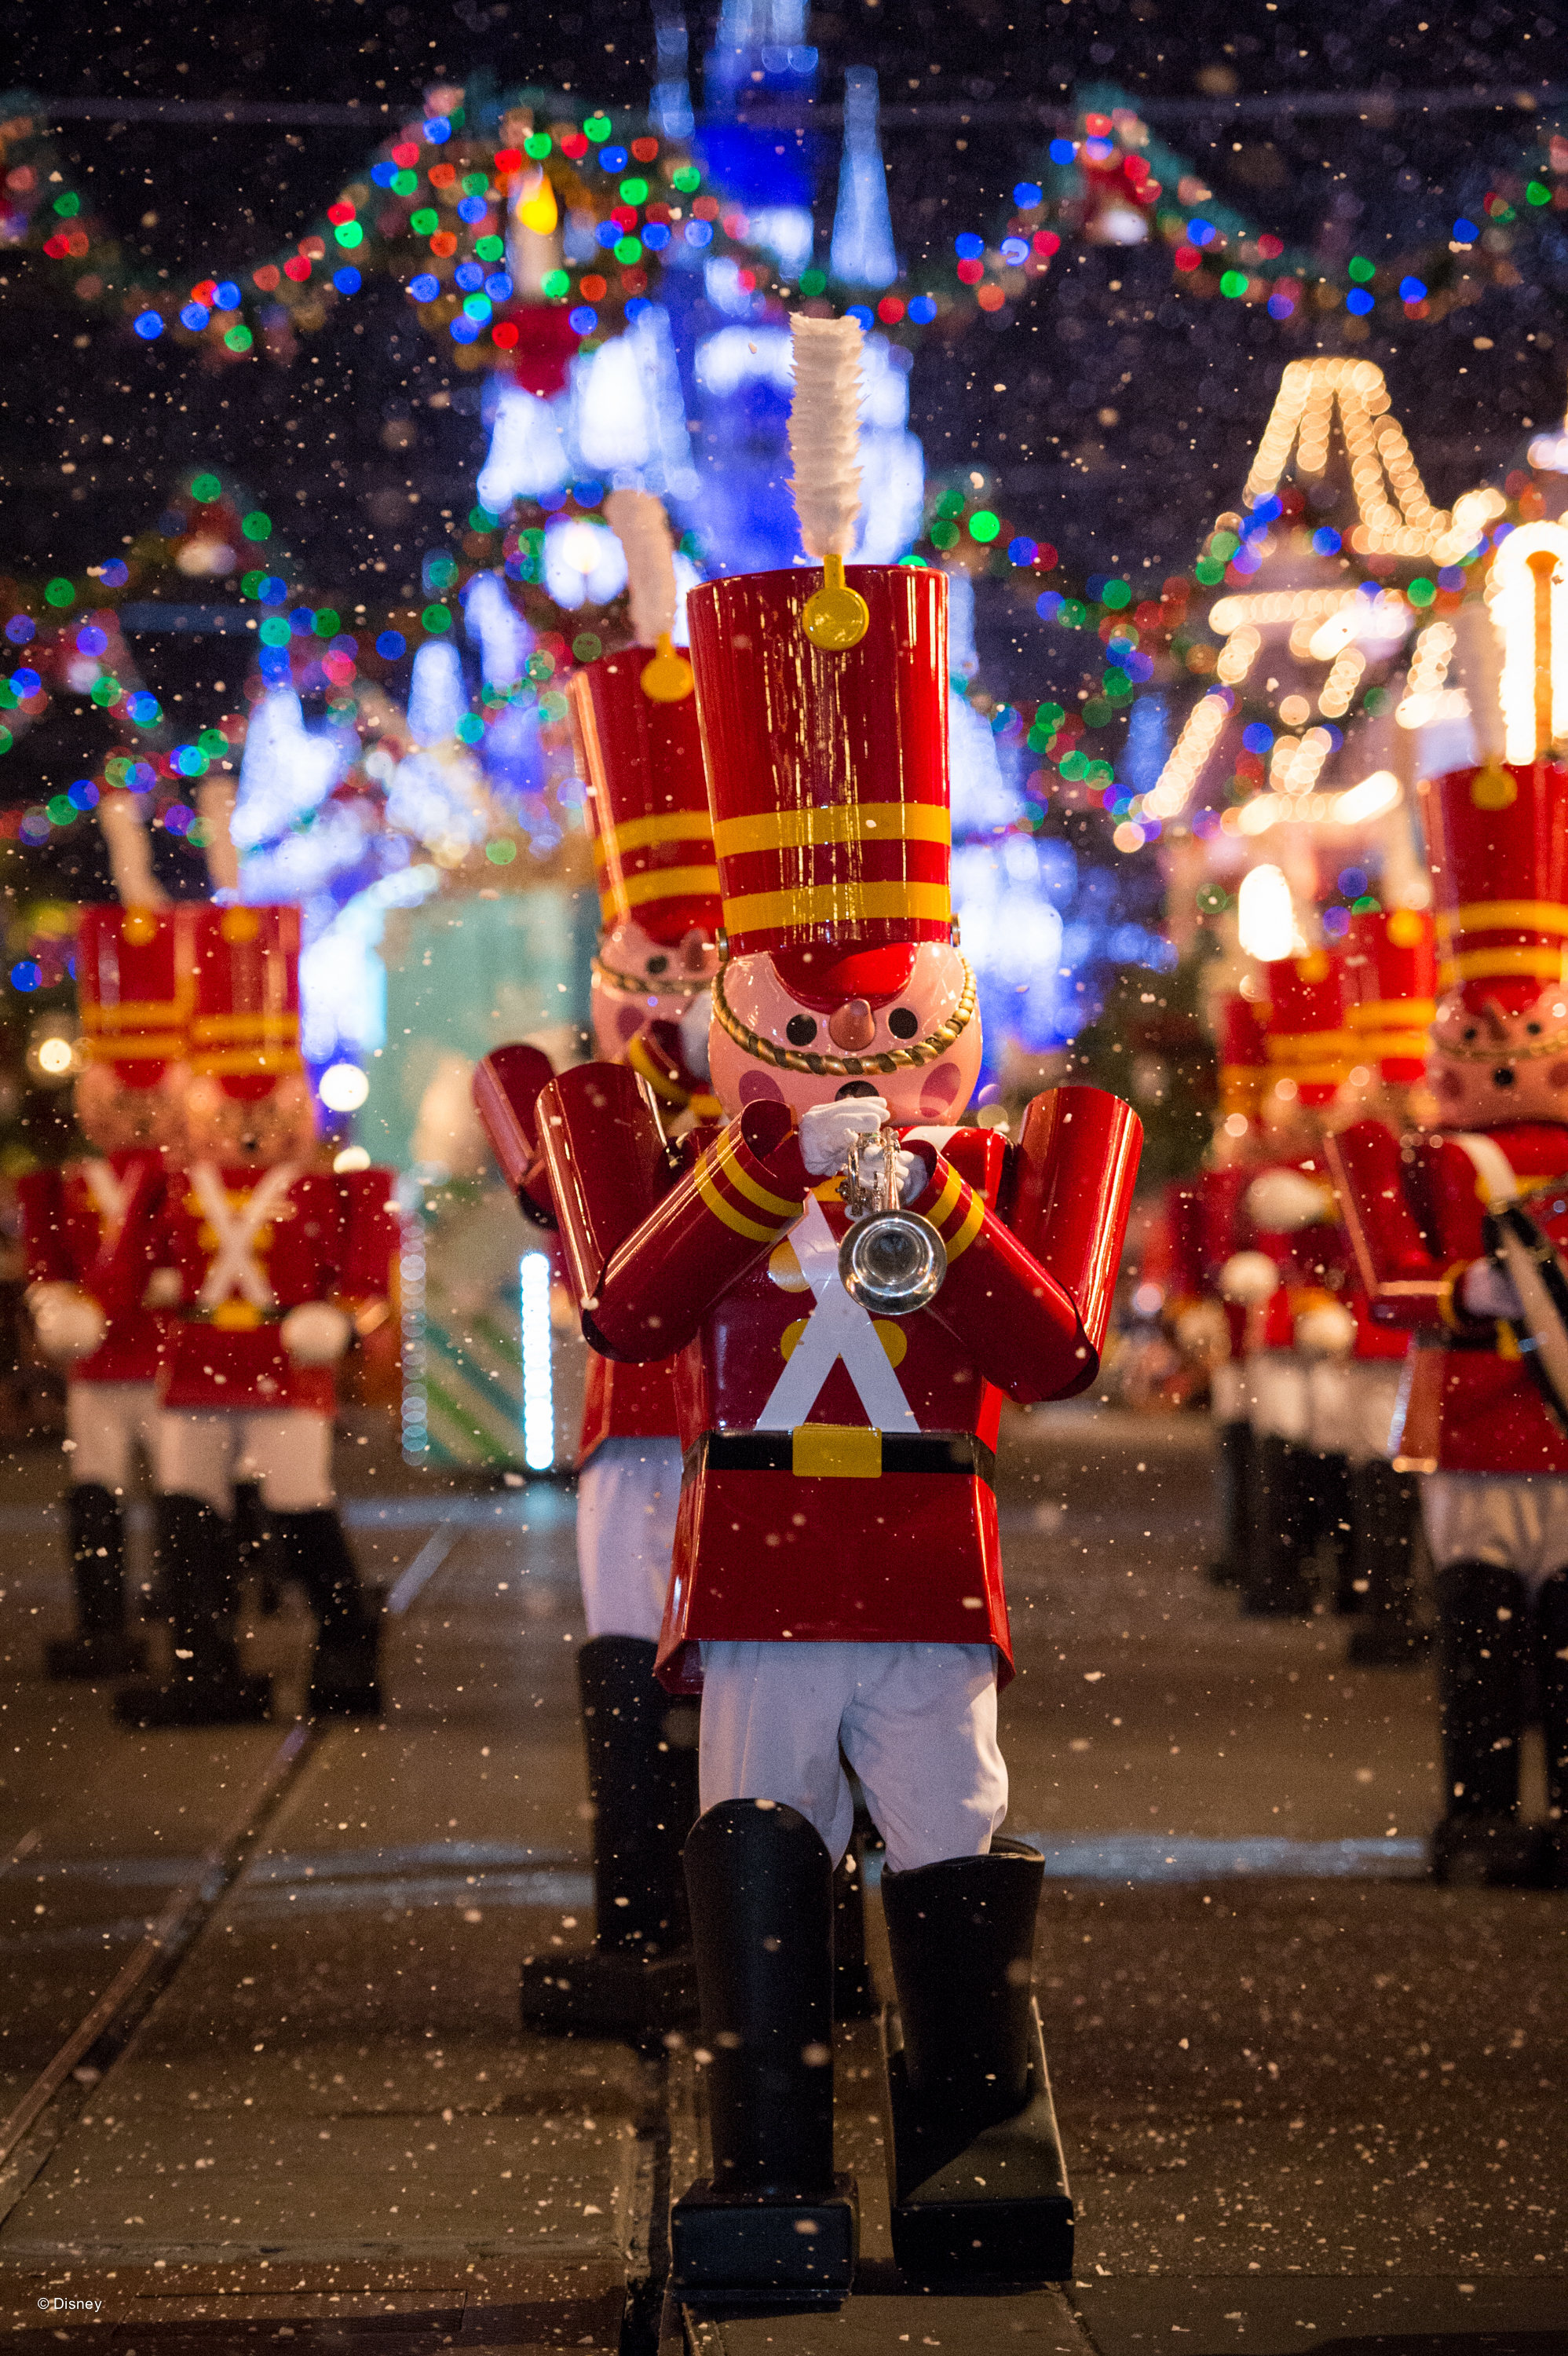 The toy soldiers in the parade are a favorite!